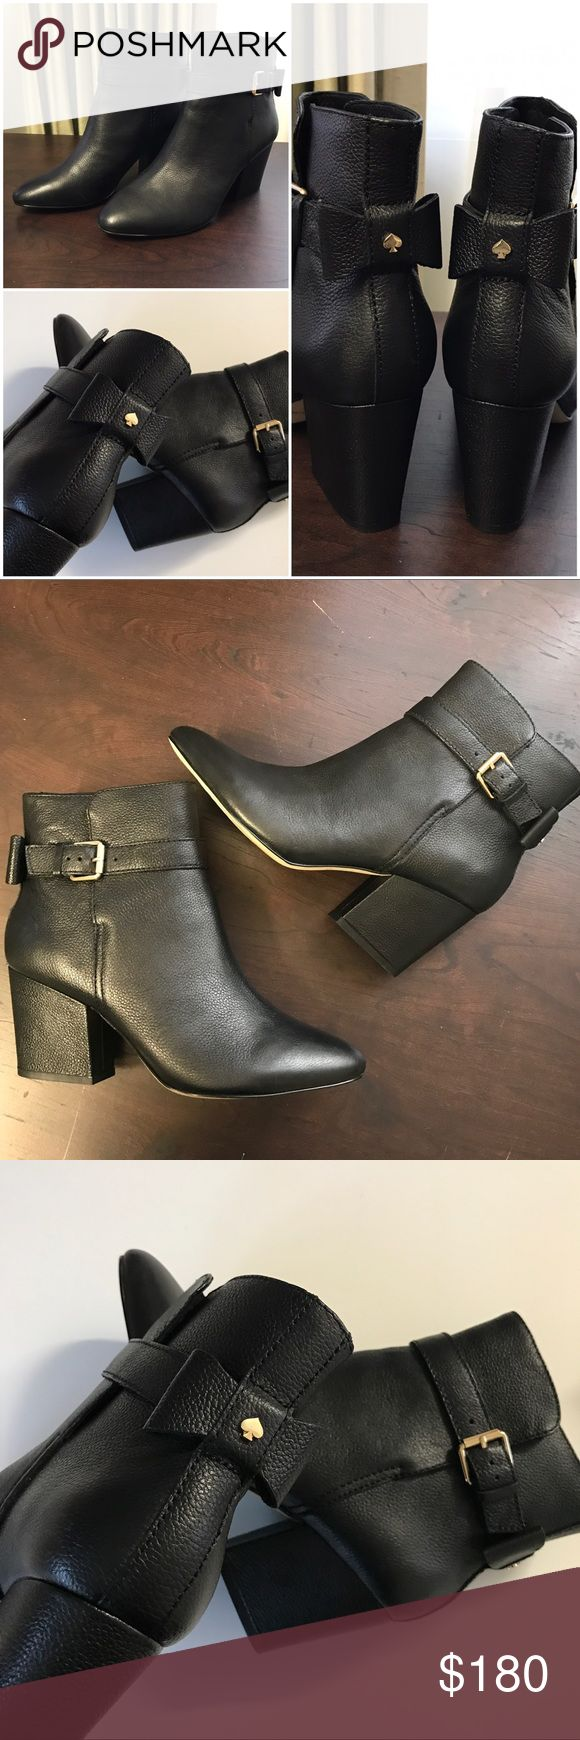 """✨$100✨Kate Spade Black Pebbled Leather Ankle Boots ✨✨WEEKEND SALE/FINAL PRICE✨✨ Steal deal • NEW WITHOUT BOX • Kate Spade Brandi Ankle Booties. Leather upper. 3"""" in block heel with cute bow tie detailing on the back. Regularly $350 + tax. ❌No trades, offers❌ kate spade Shoes"""